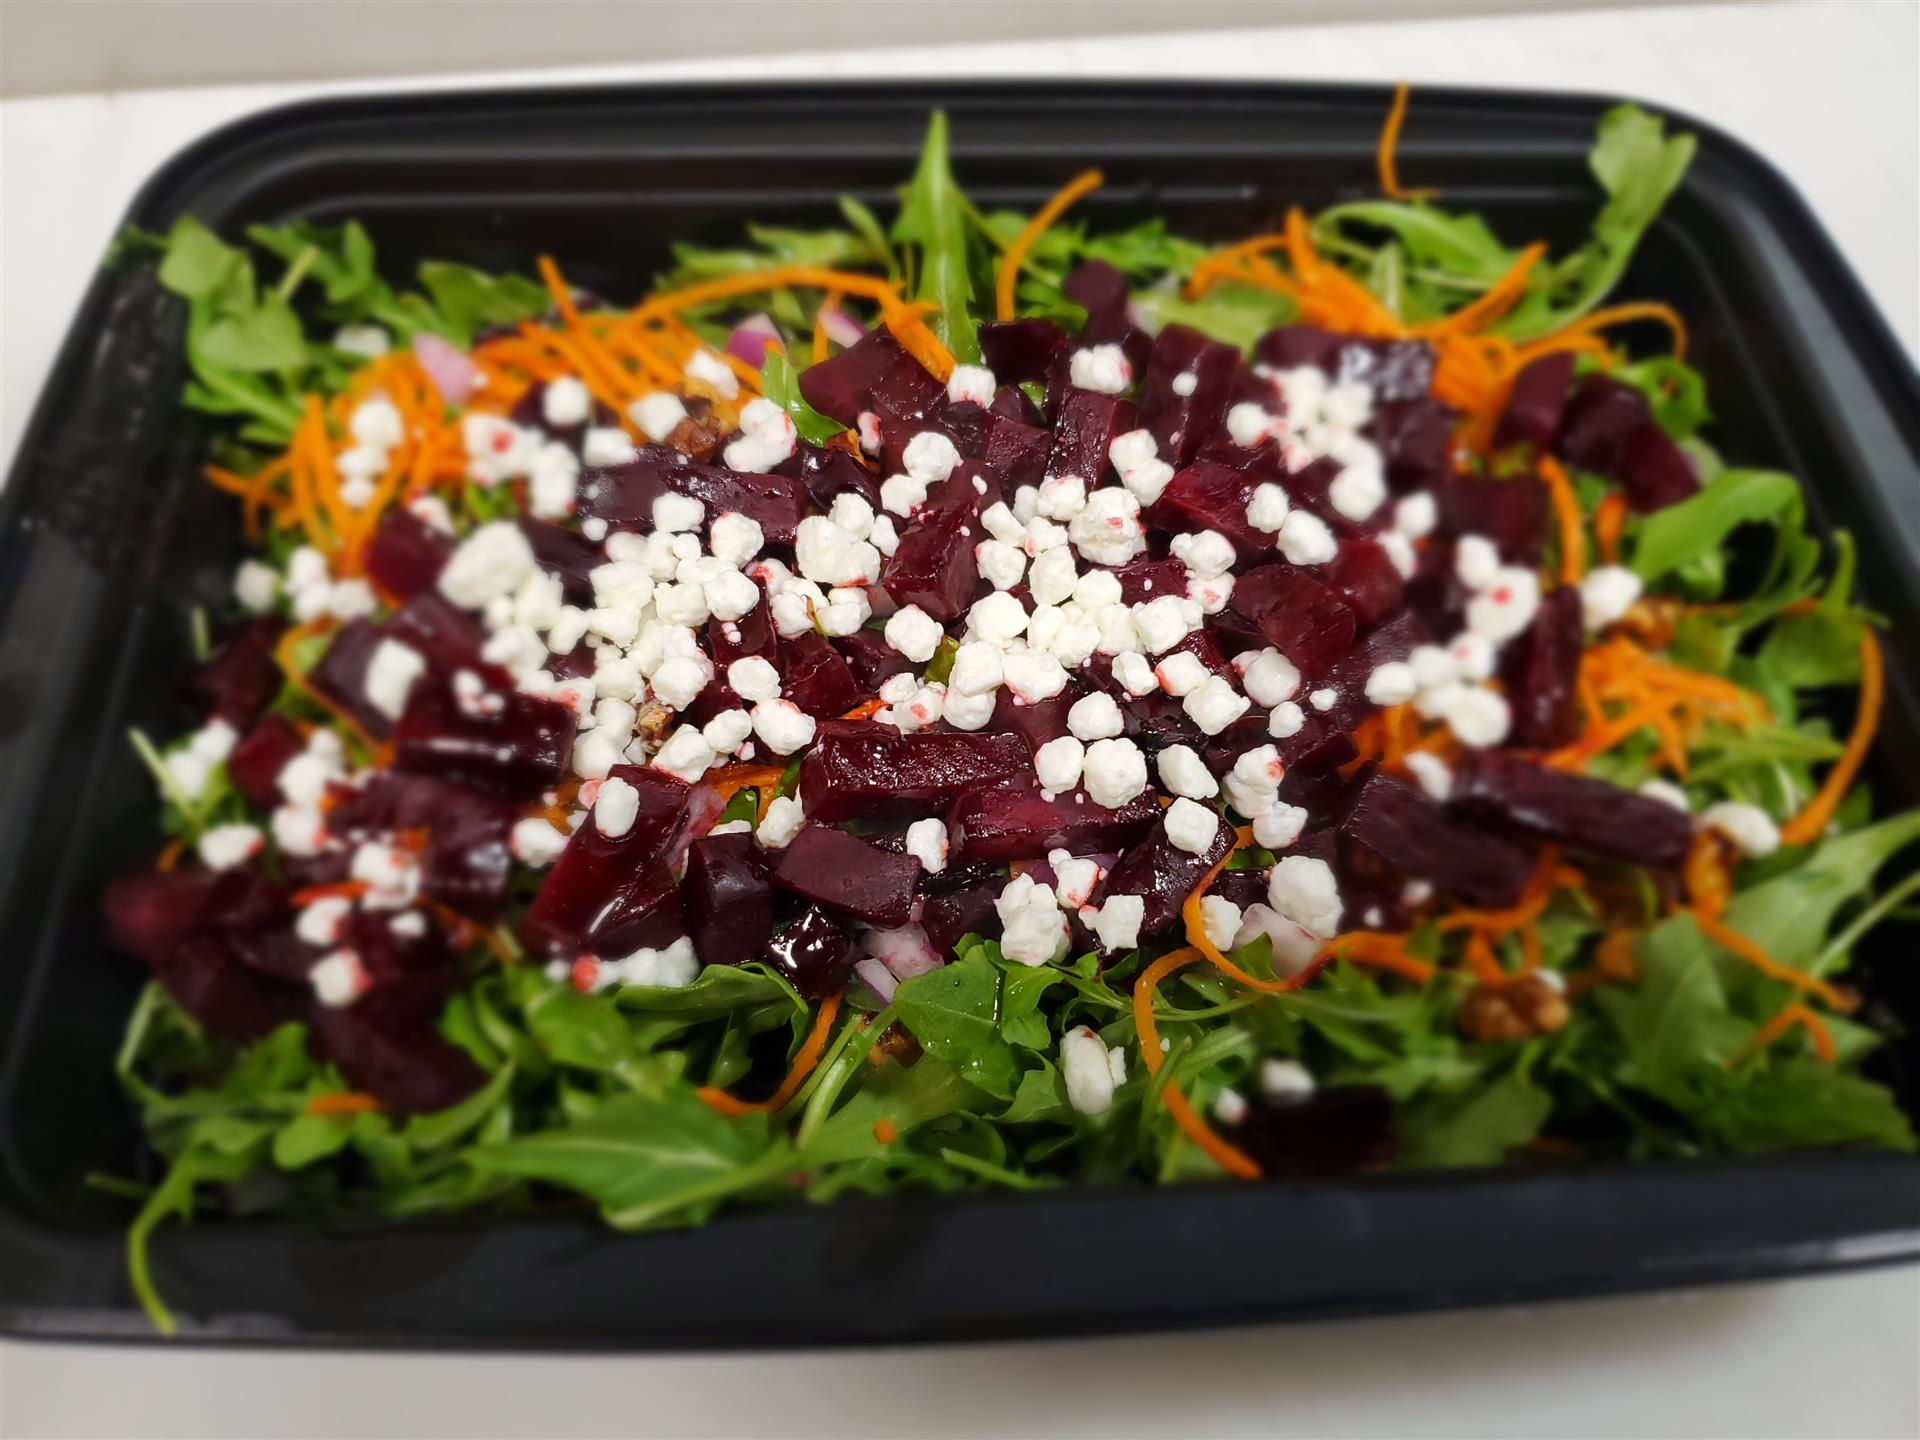 beet salad topped with goat cheese